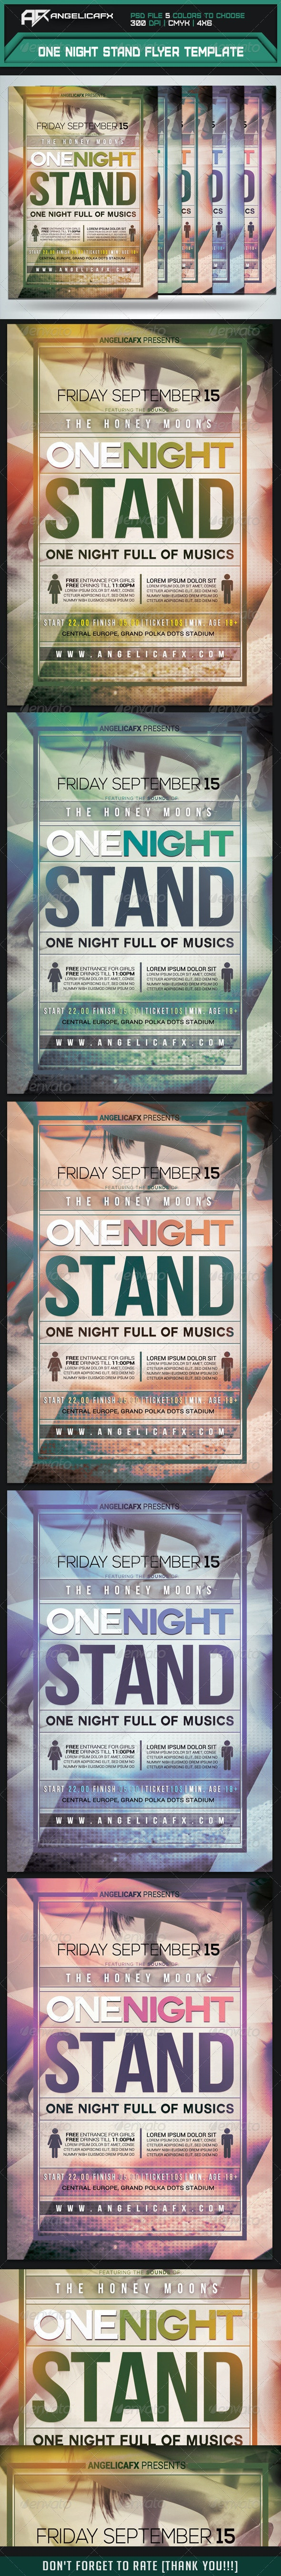 One Night Stand Flyer Template - Flyers Print Templates